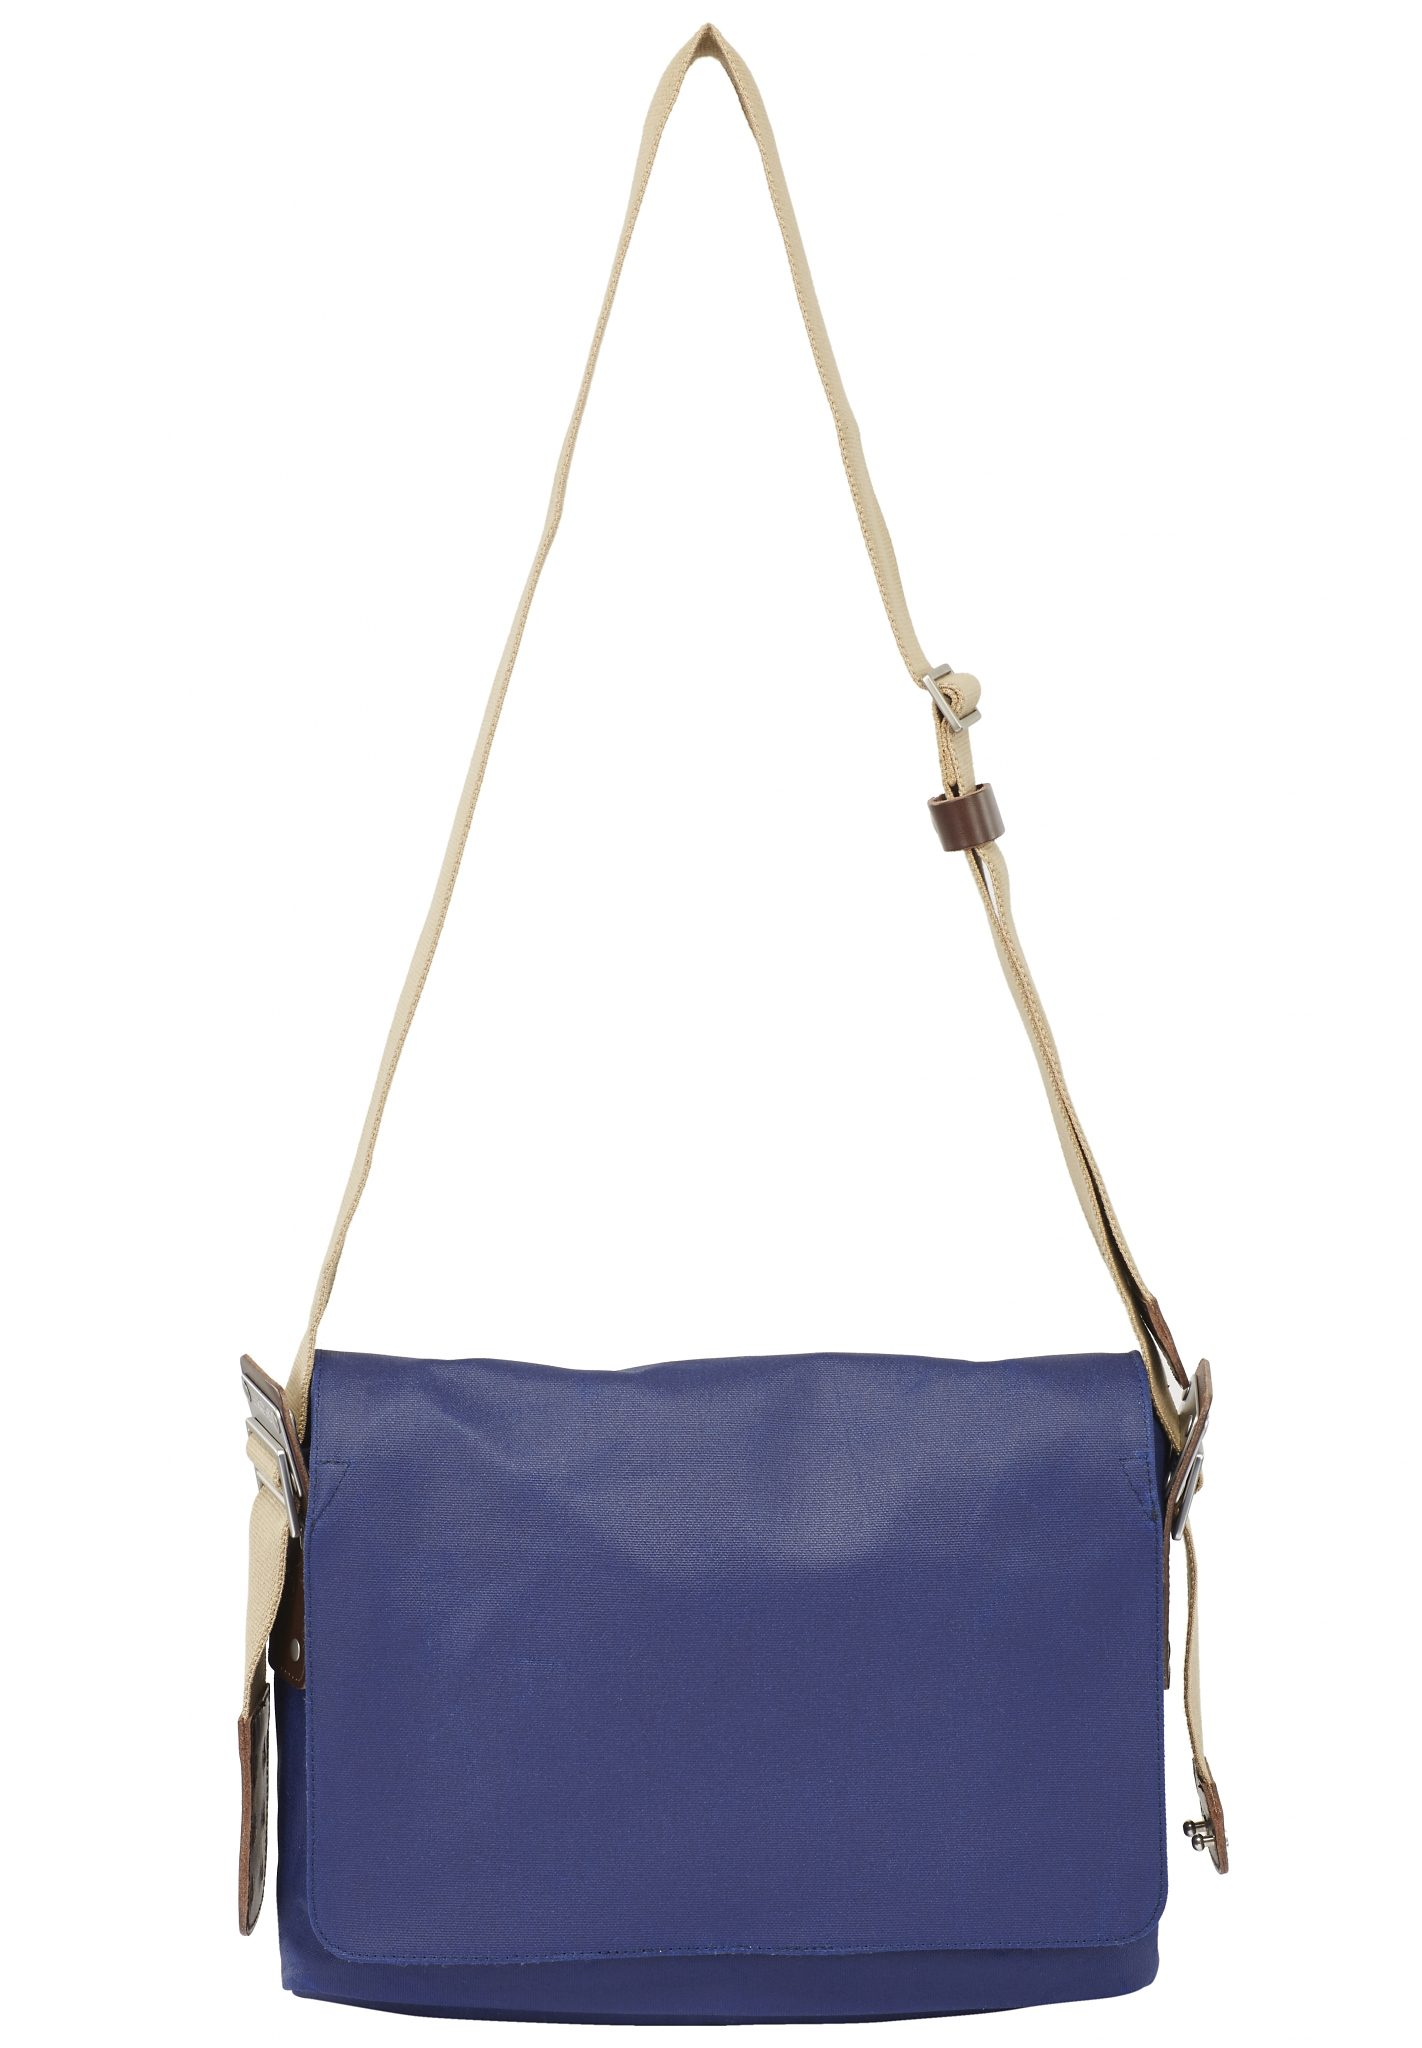 Brooks Fahrradtasche »Paddington Shoulder Bag blue«